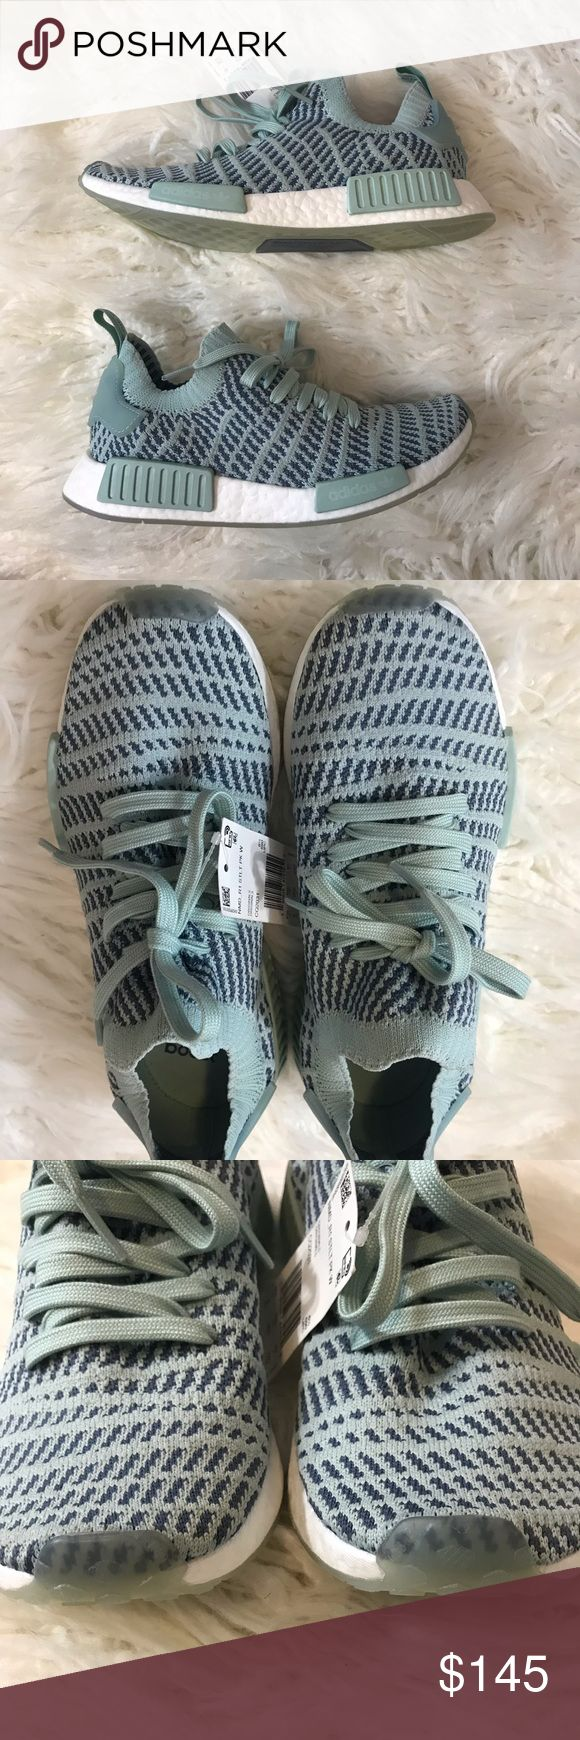 Adidas NMD Sneakers Size 8, NWT! These run big I wear a 9 in